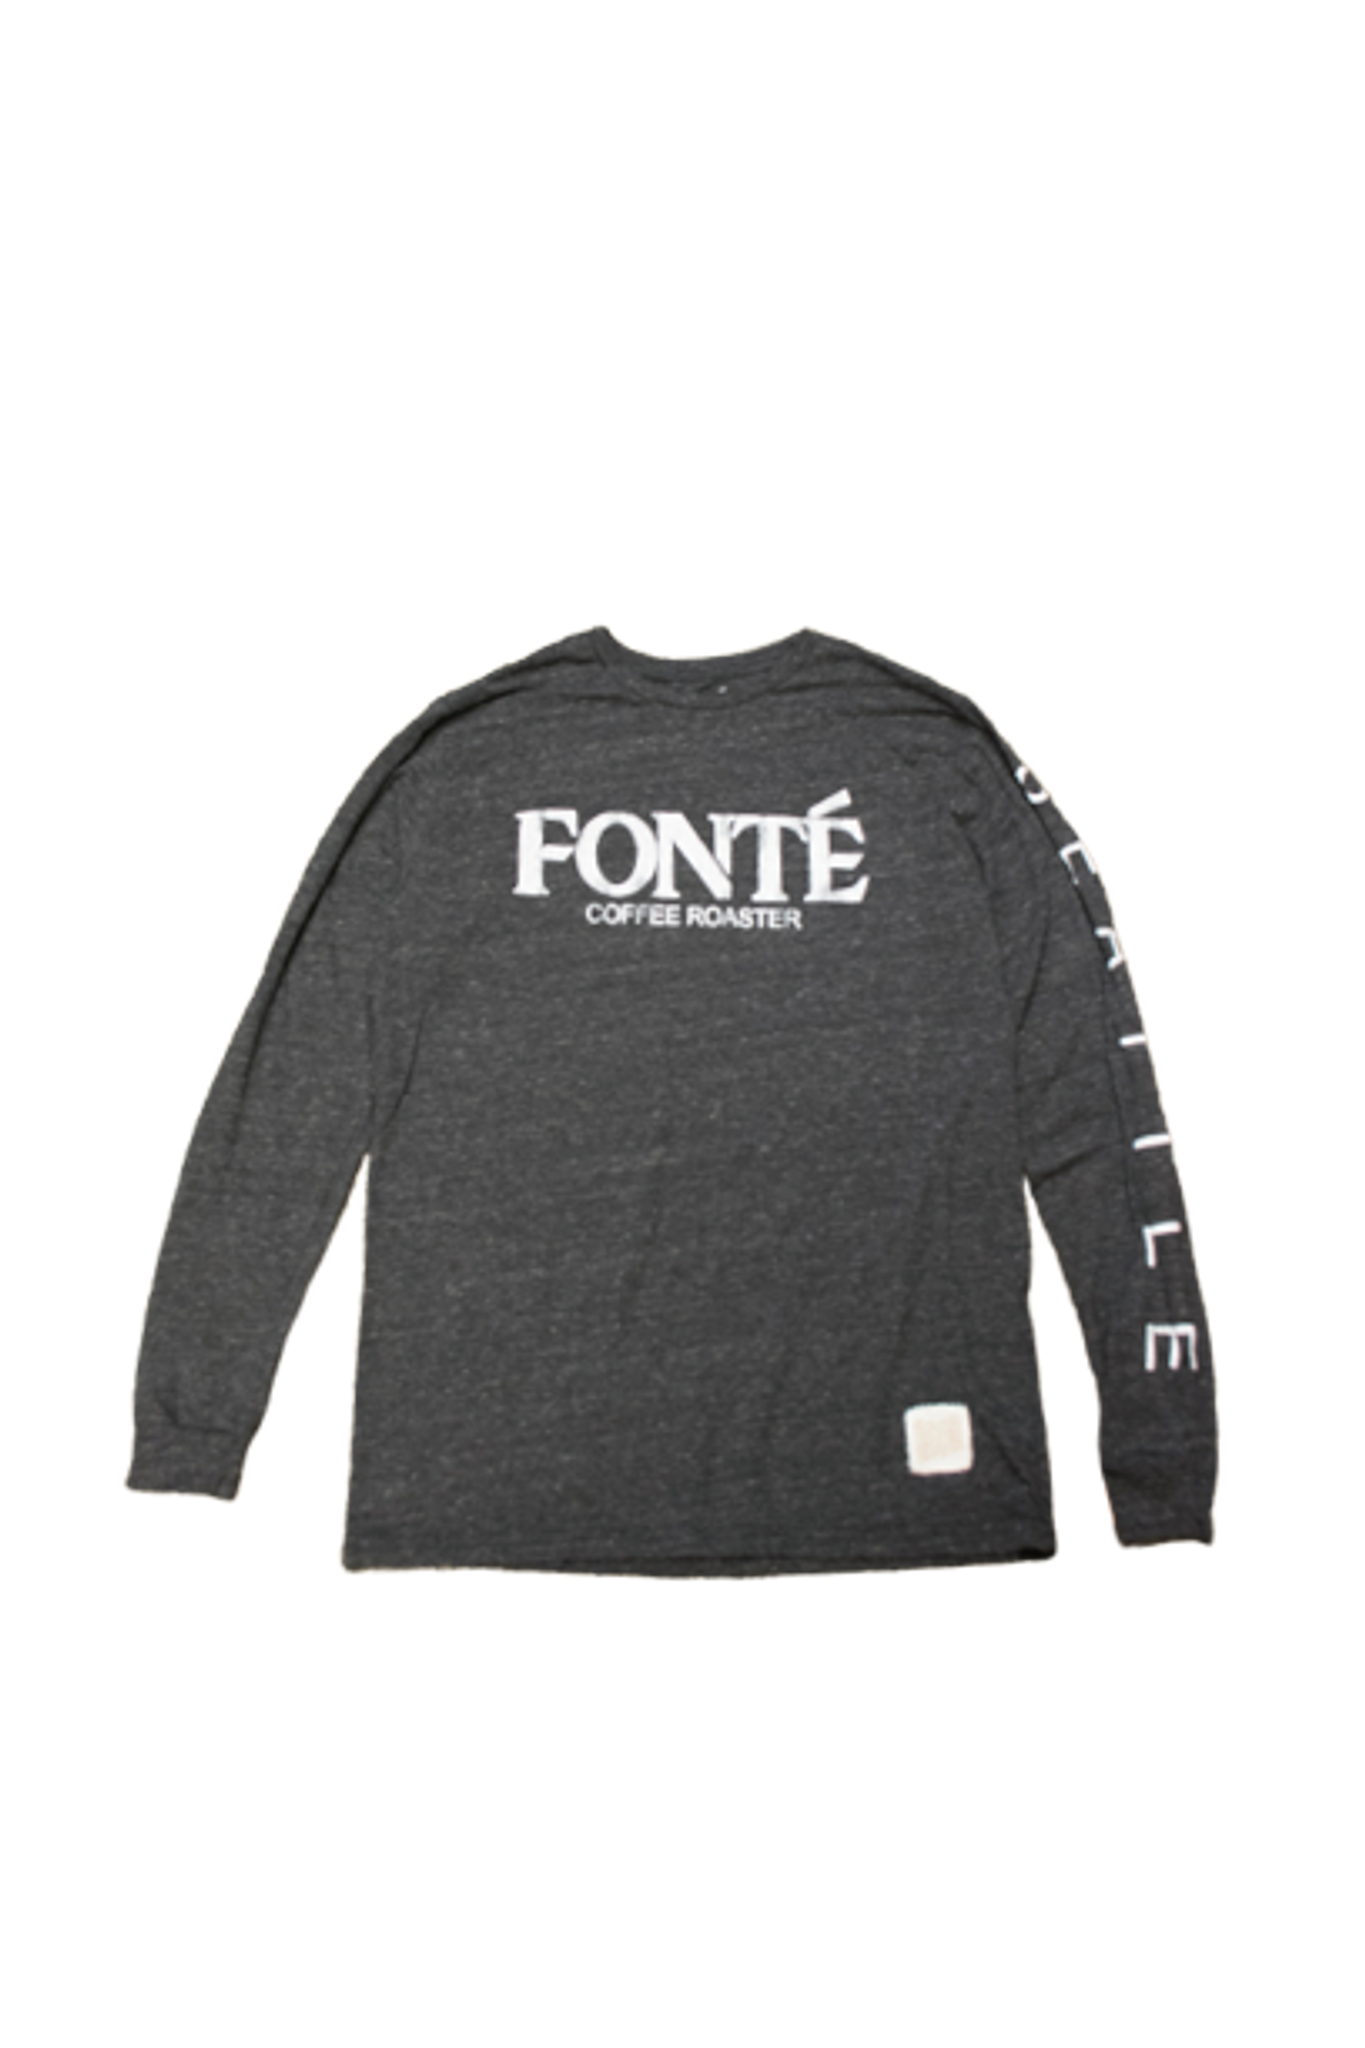 Fonte Coffee Roaster Long Sleeve Tshirt